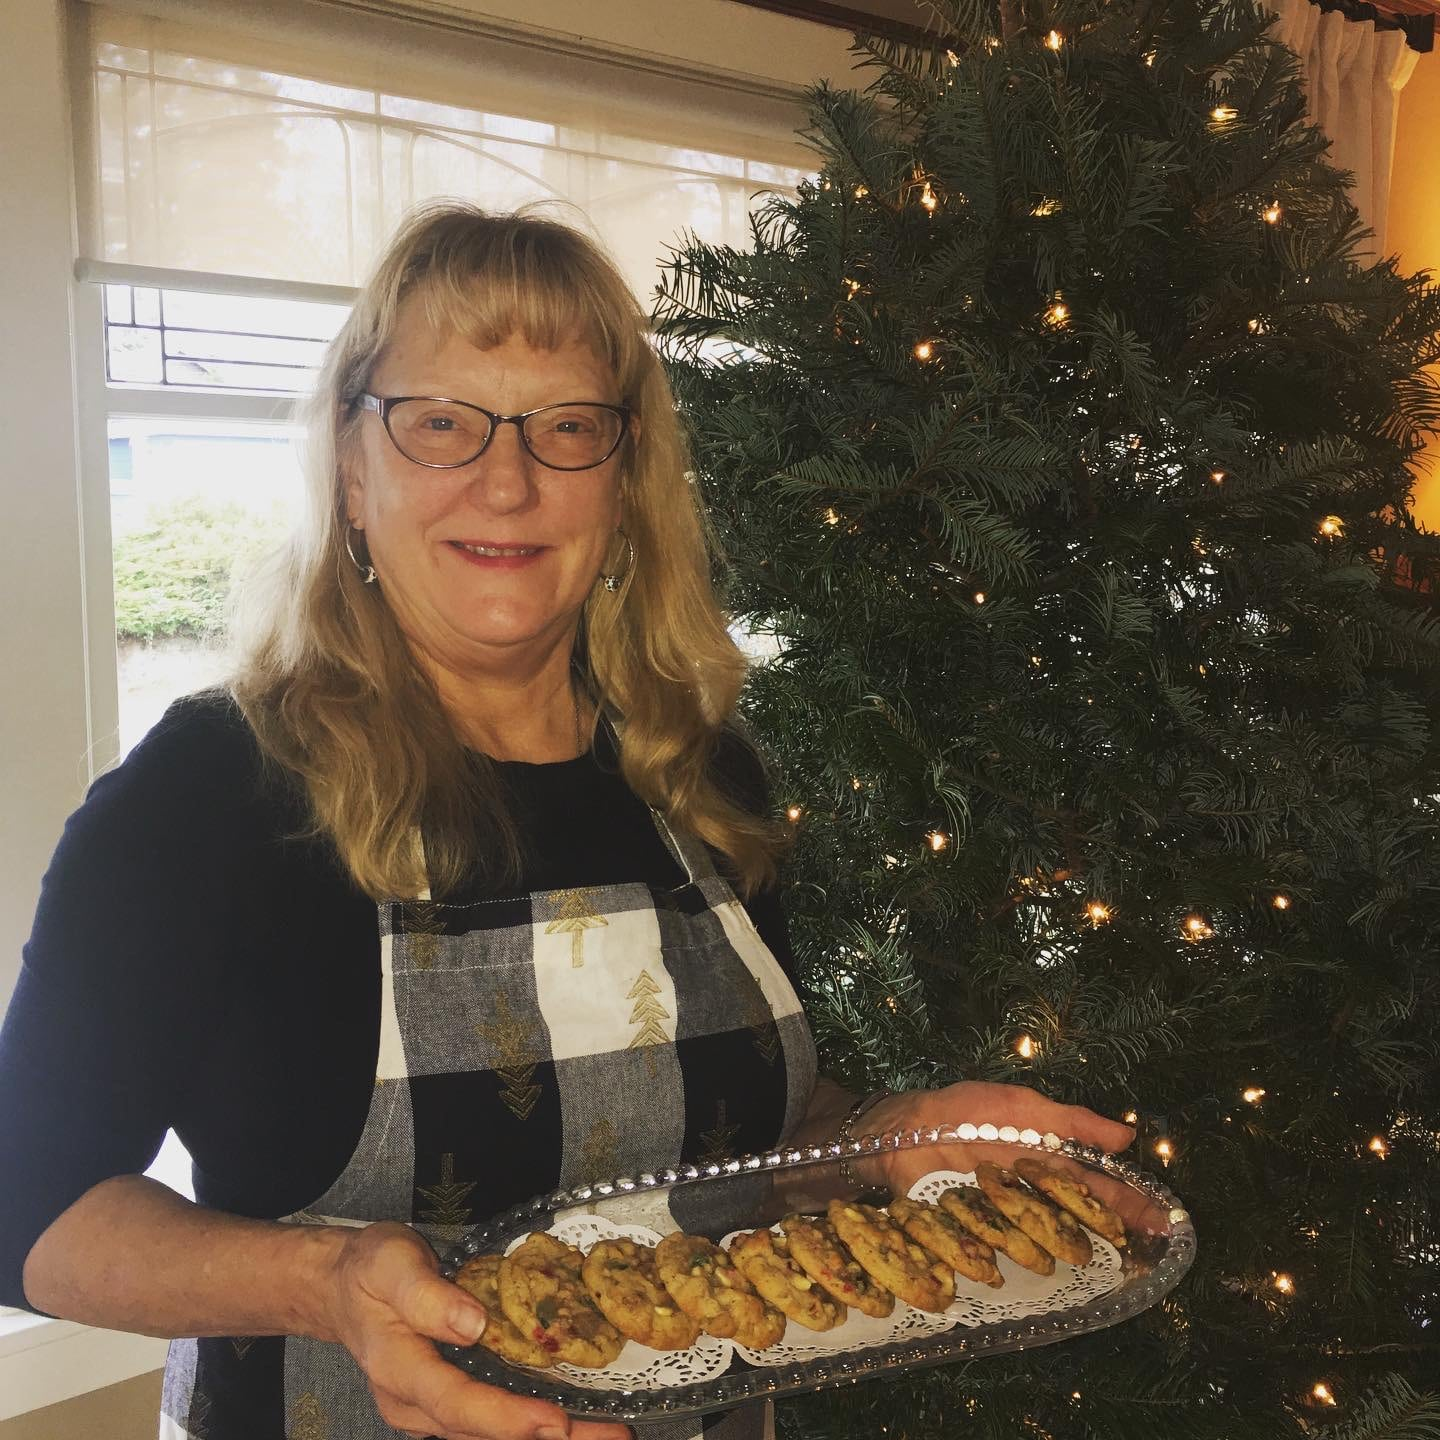 Woman holding tray of cookies in front of Christmas tree